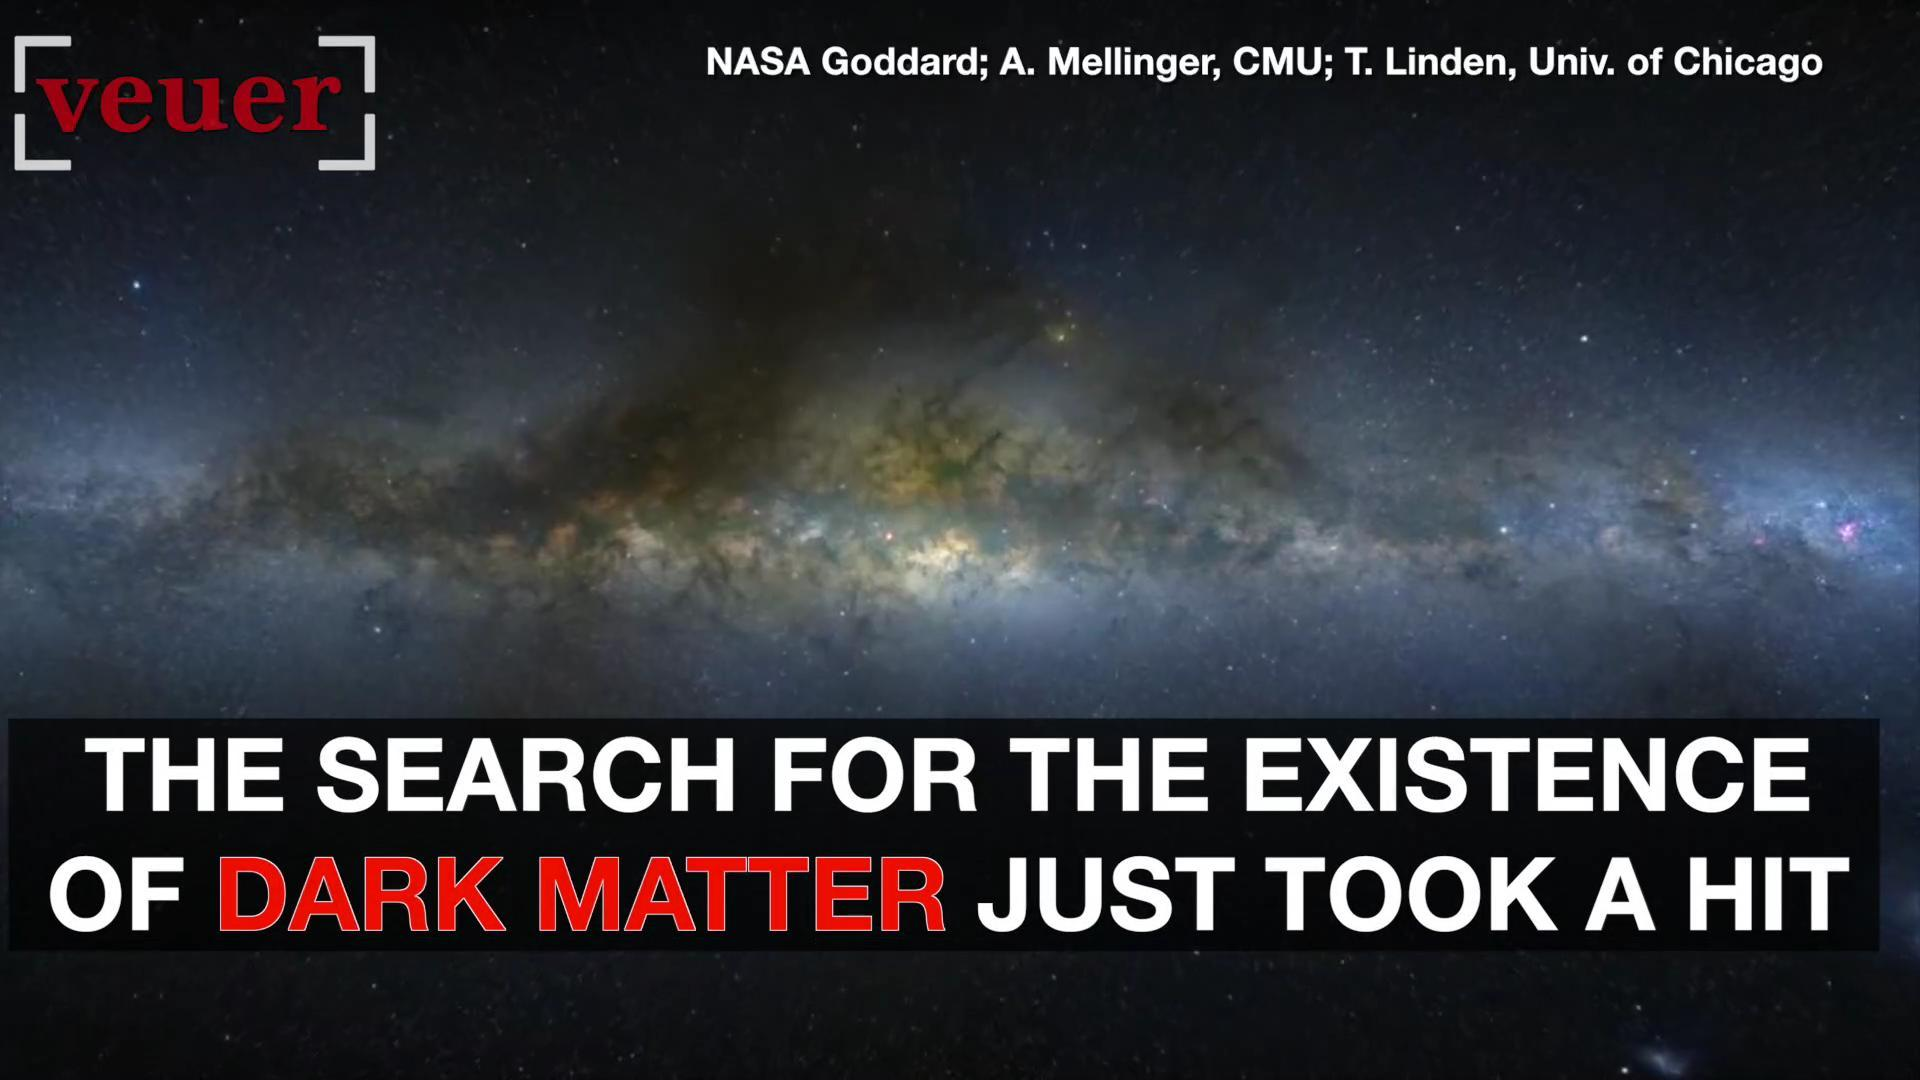 The Search To Find Evidence of Dark Matter Just Took A Hit